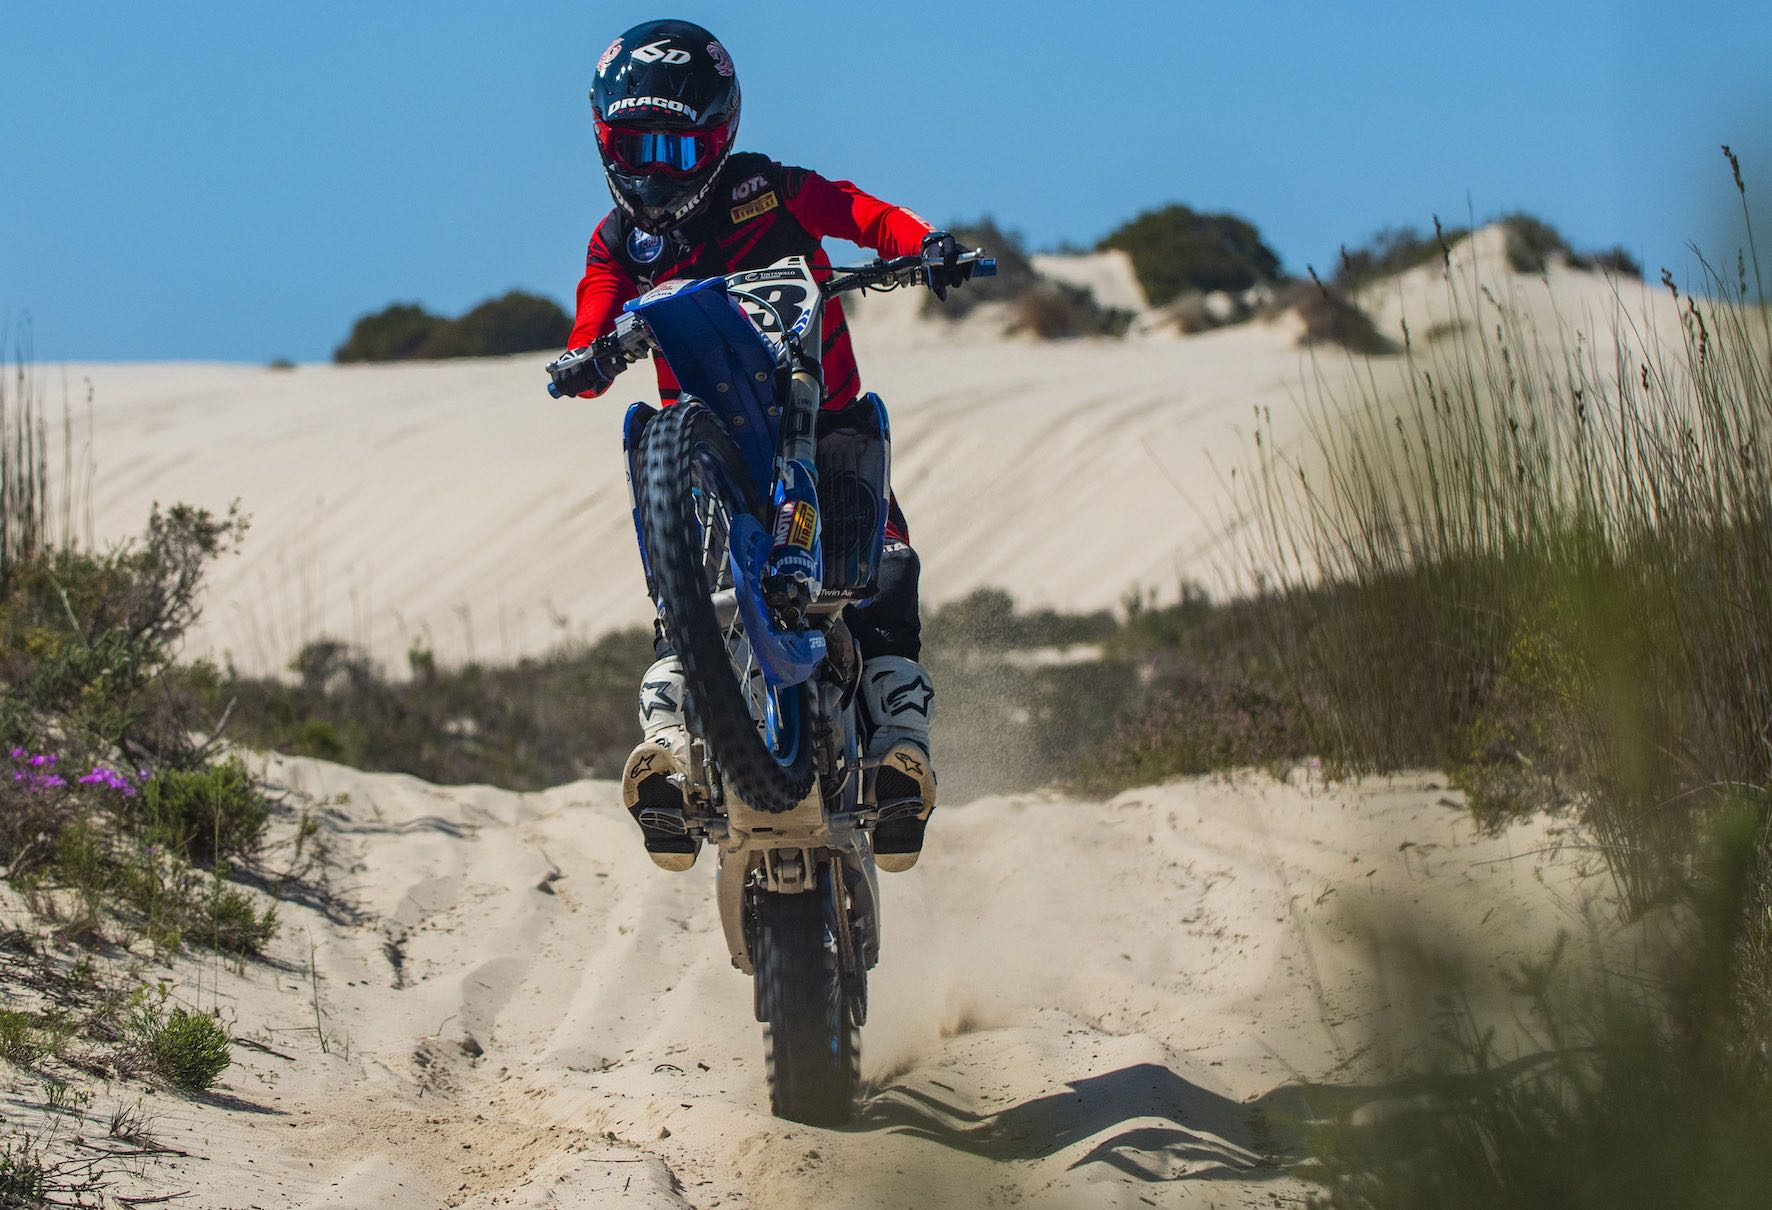 Motocross video feature with Anthony Raynard